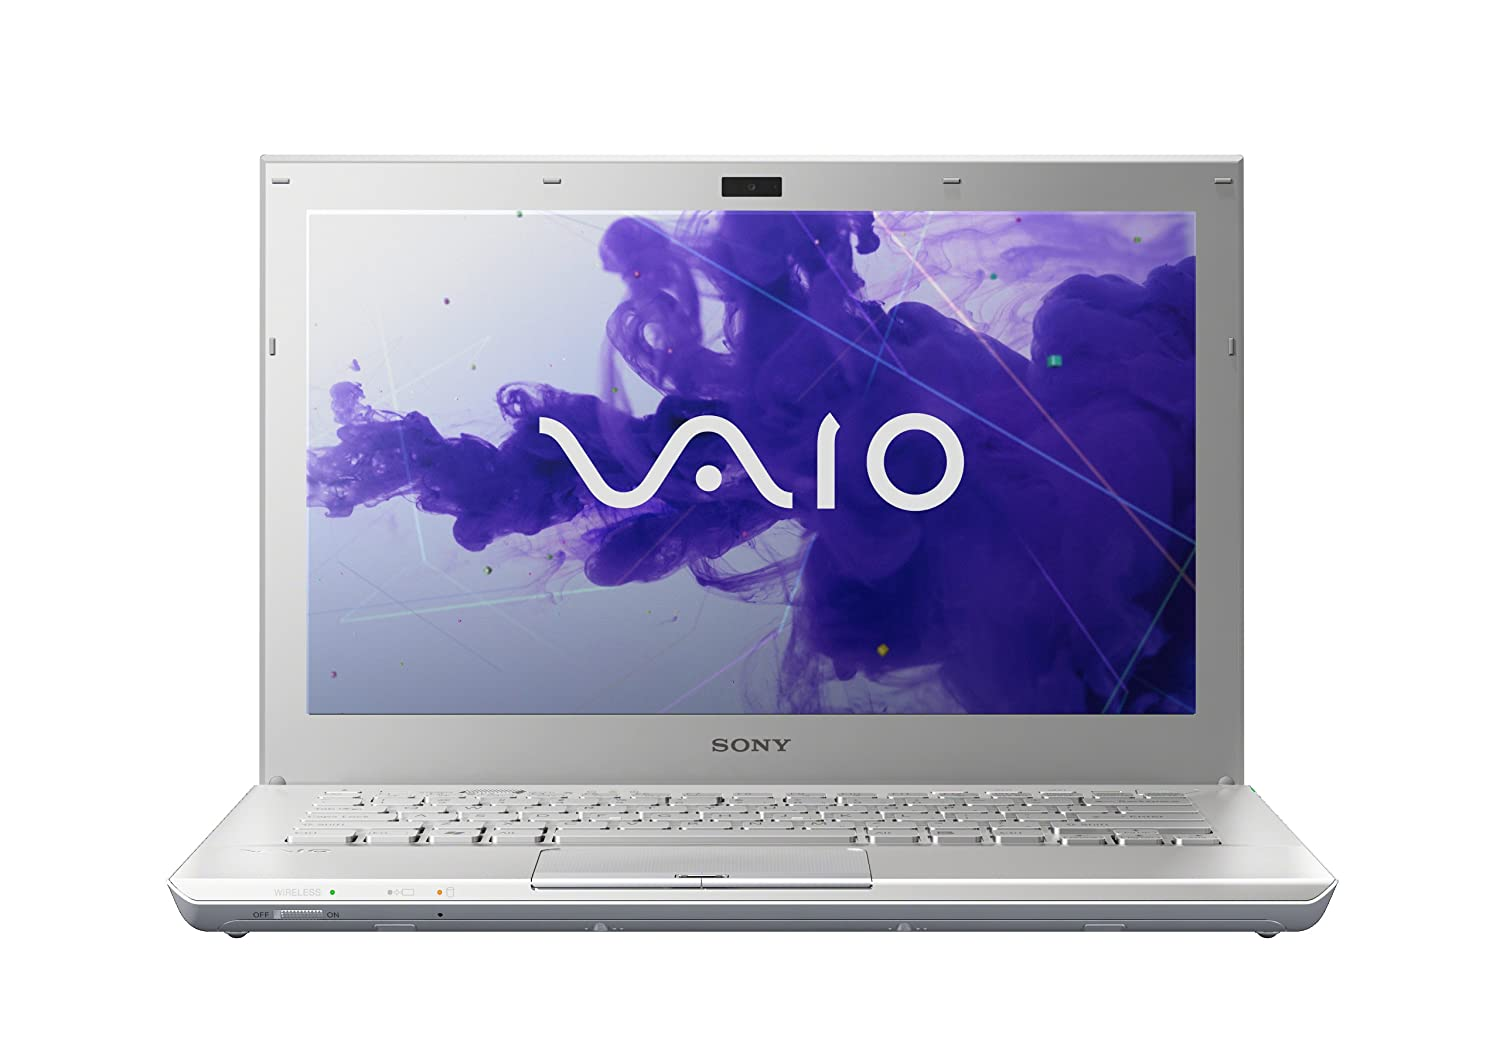 Sony Vaio VPCSA43FX/SI Intel WiDi Download Driver